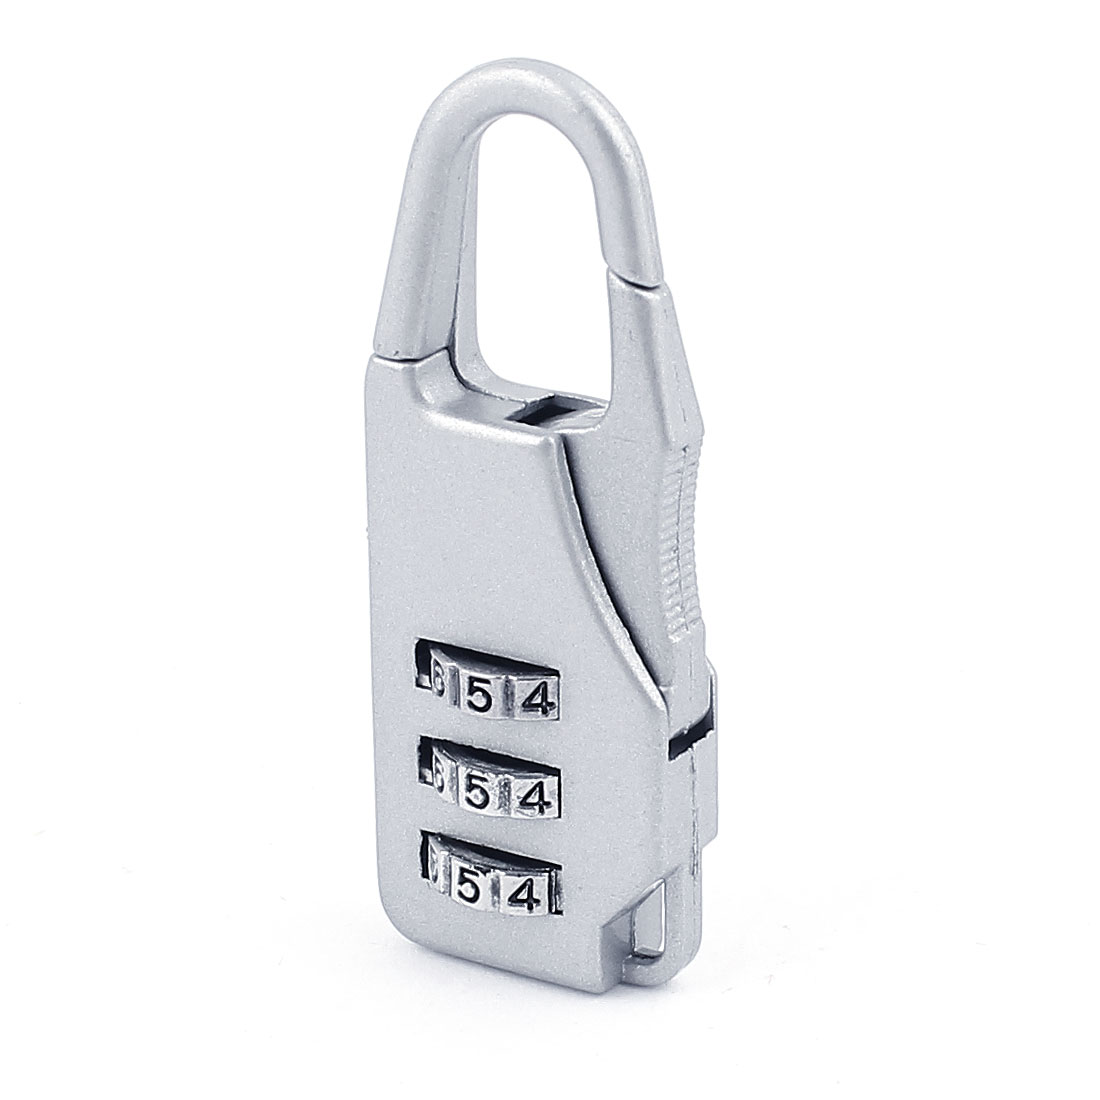 Baggage 3 Digits Security Combination Dial Lock Password Padlock Silver Tone